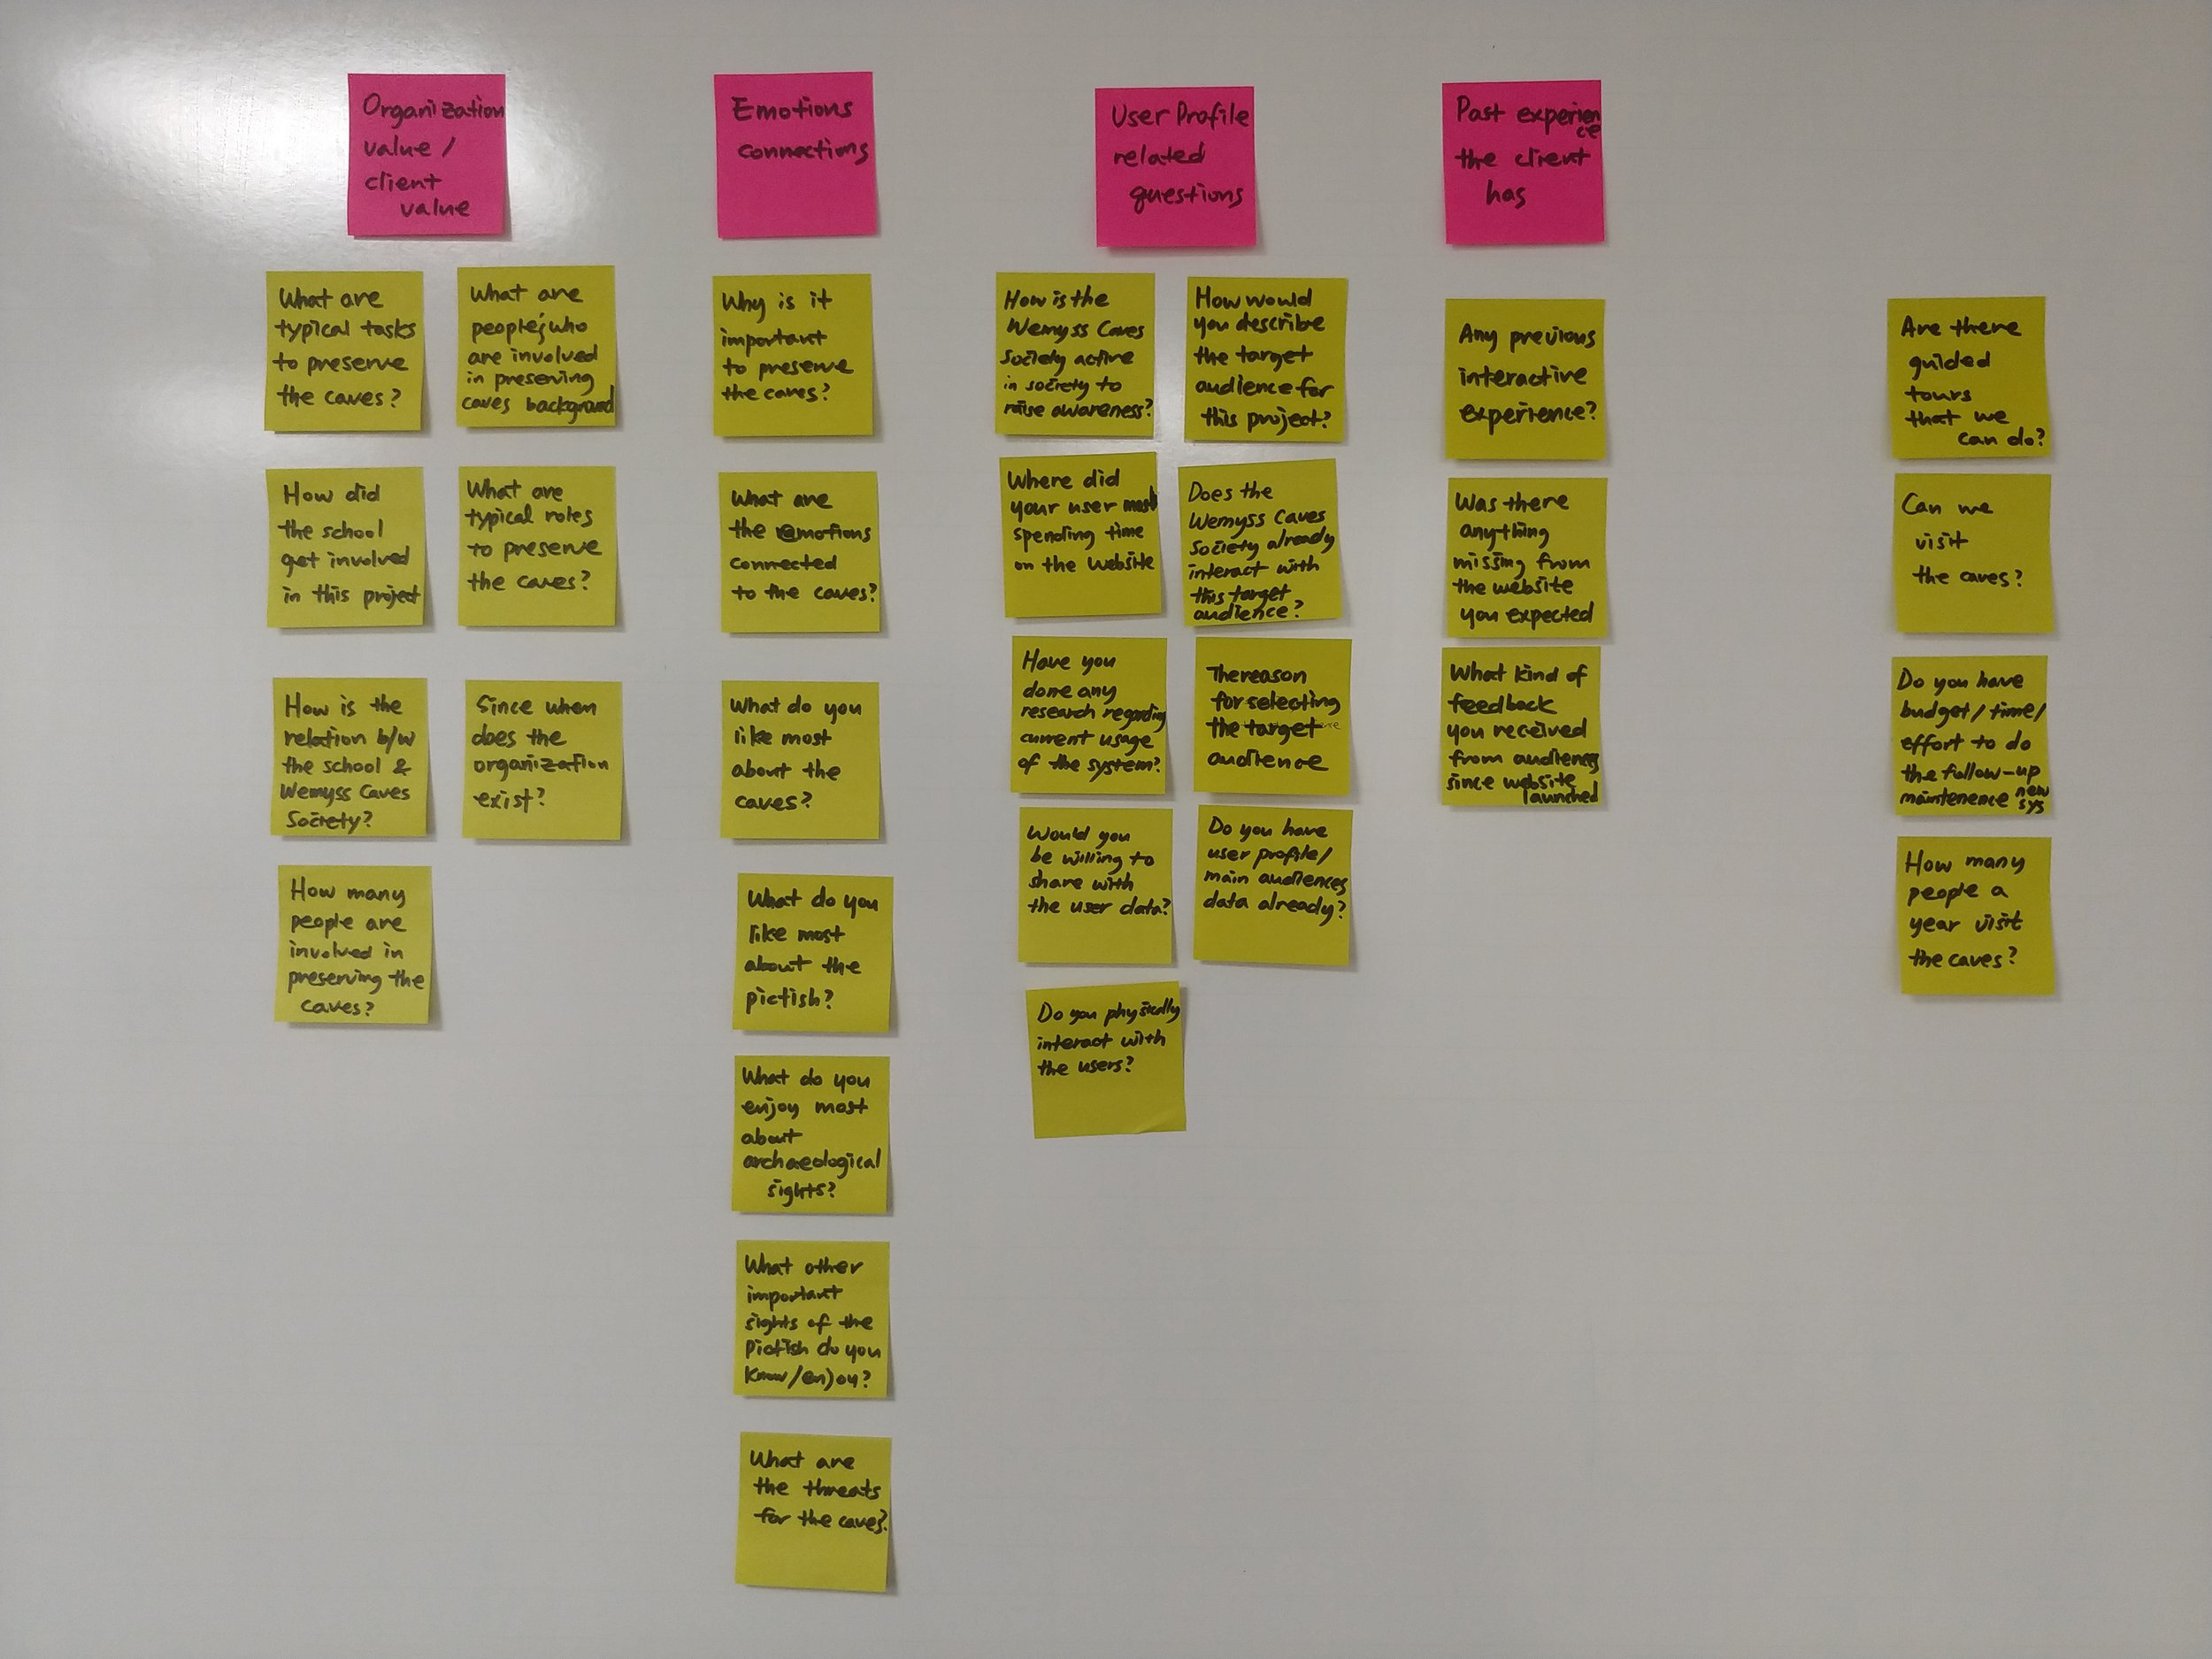 Figure 1. Ideation for Interview